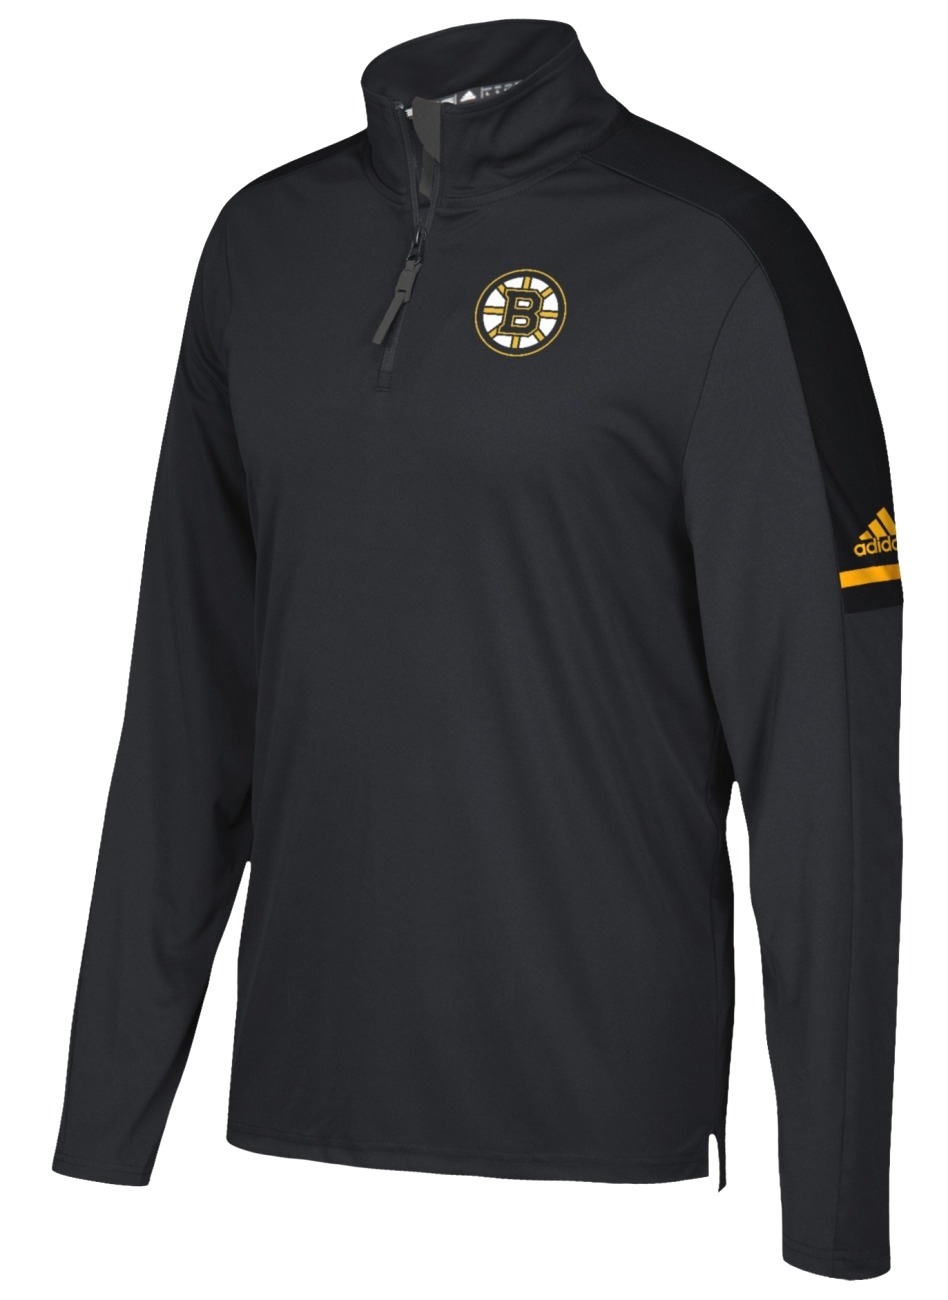 Boston Bruins Adidas NHL Men's 2017 Authentic Pro 1/4 Zip Wind Shirt